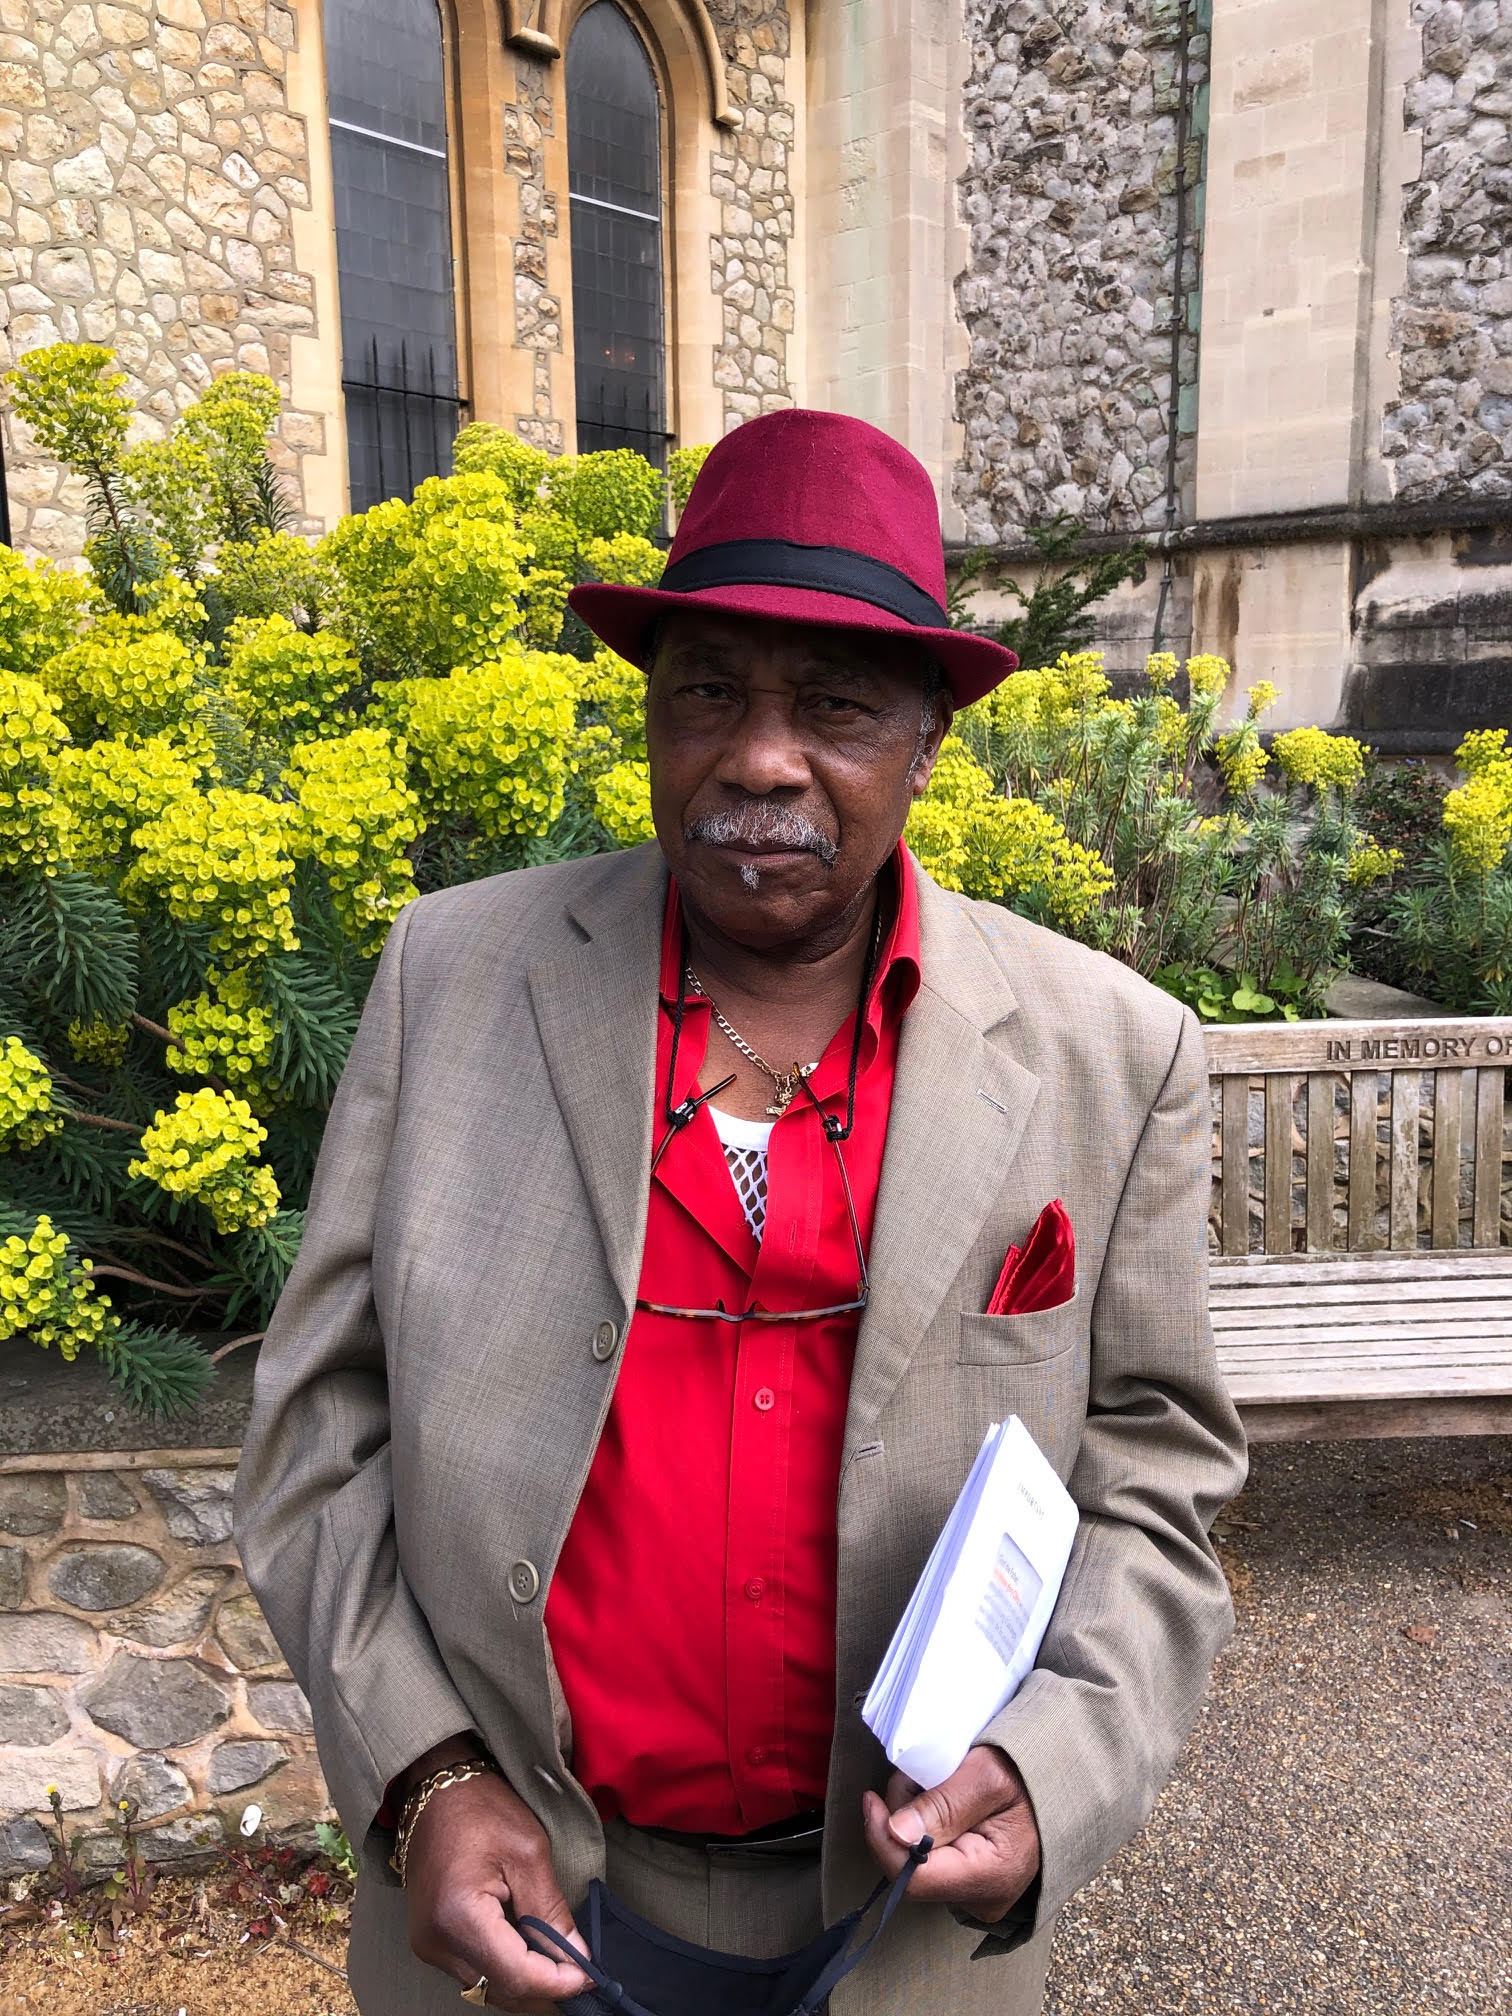 Image of Keith Watson. Wearing a beige suit, red shirt and maroon hat